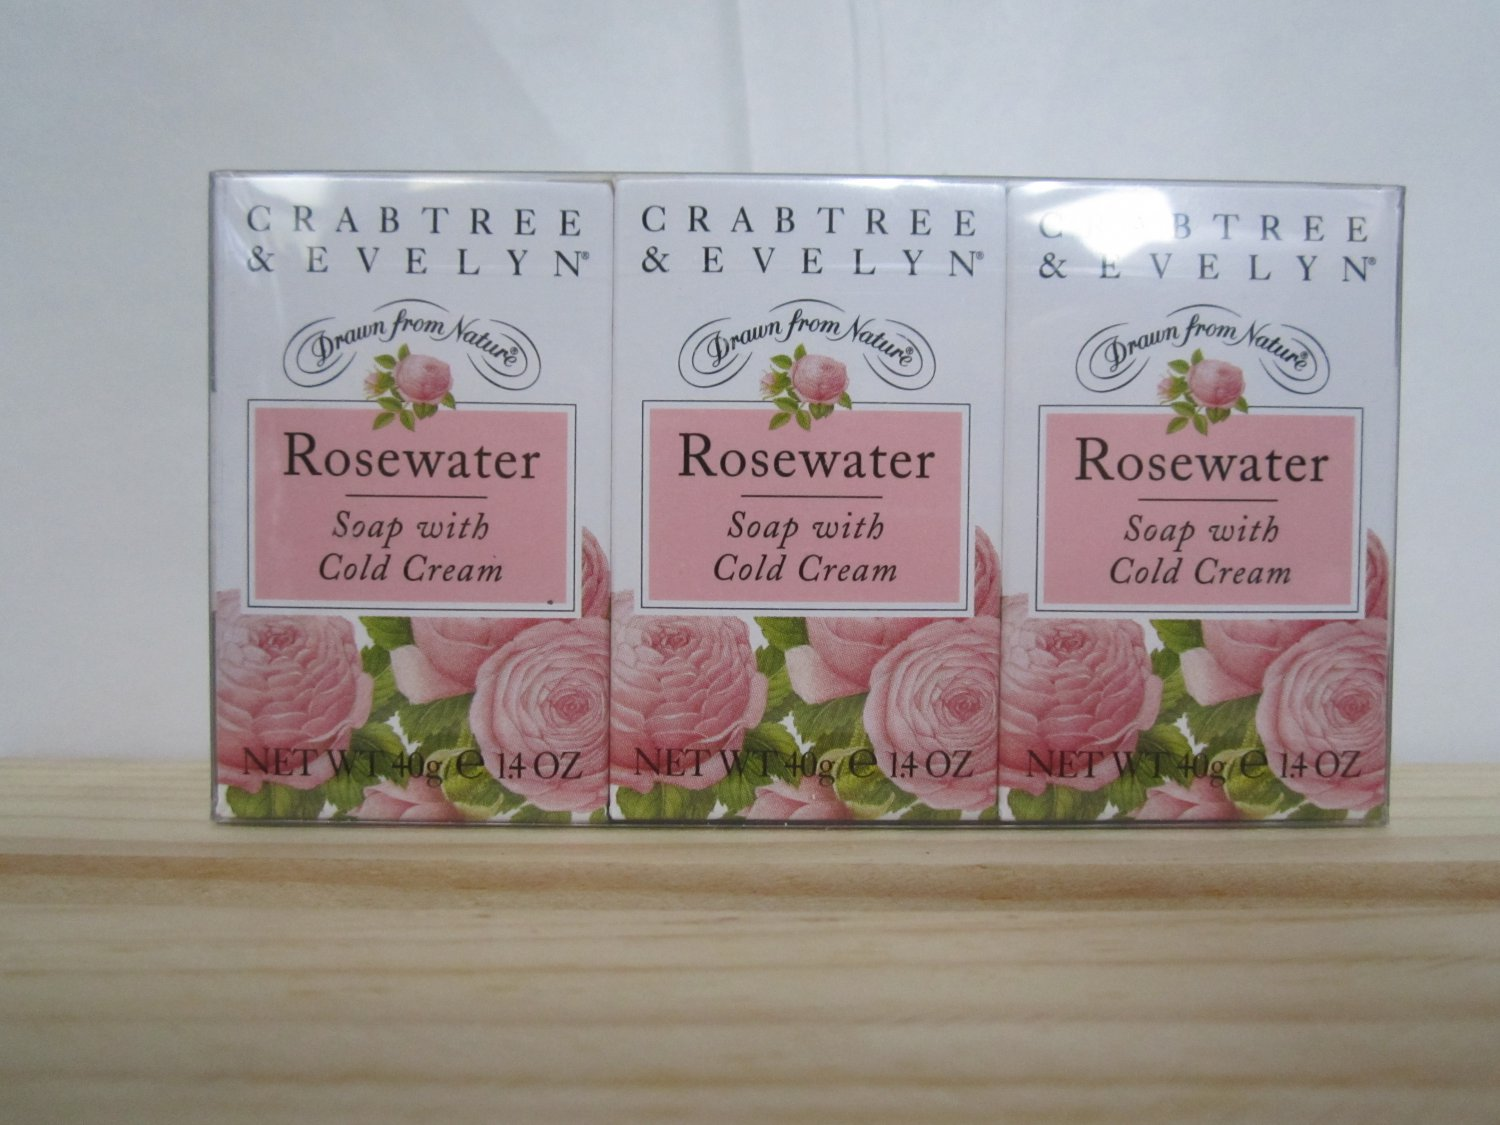 Crabtree Evelyn Soap with Cold Cream Rosewater Set/3 Travel � Personal �  Guest Size giftpack